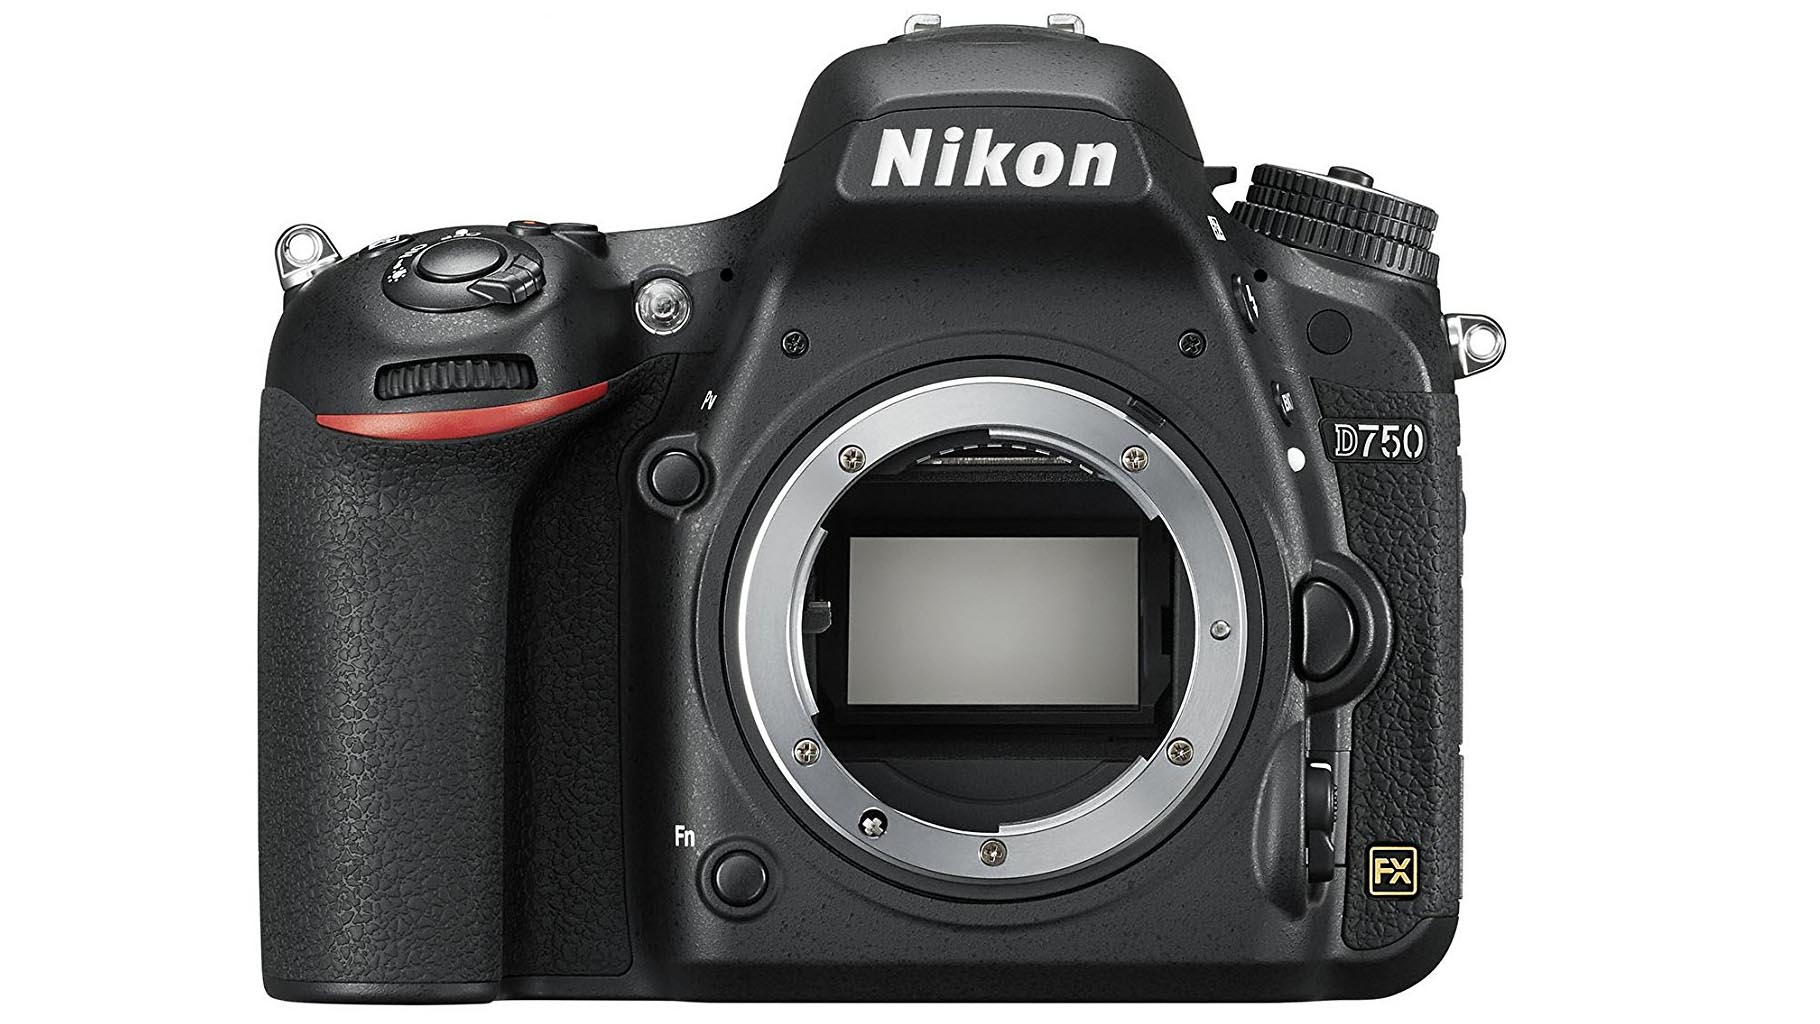 Camera Full Frame Dslr Camera List best dslrs the to buy from a350 a3500 expert reviews full frame slrs are a step up cropped sensor models for image quality and nikon d750 hits homerun features va